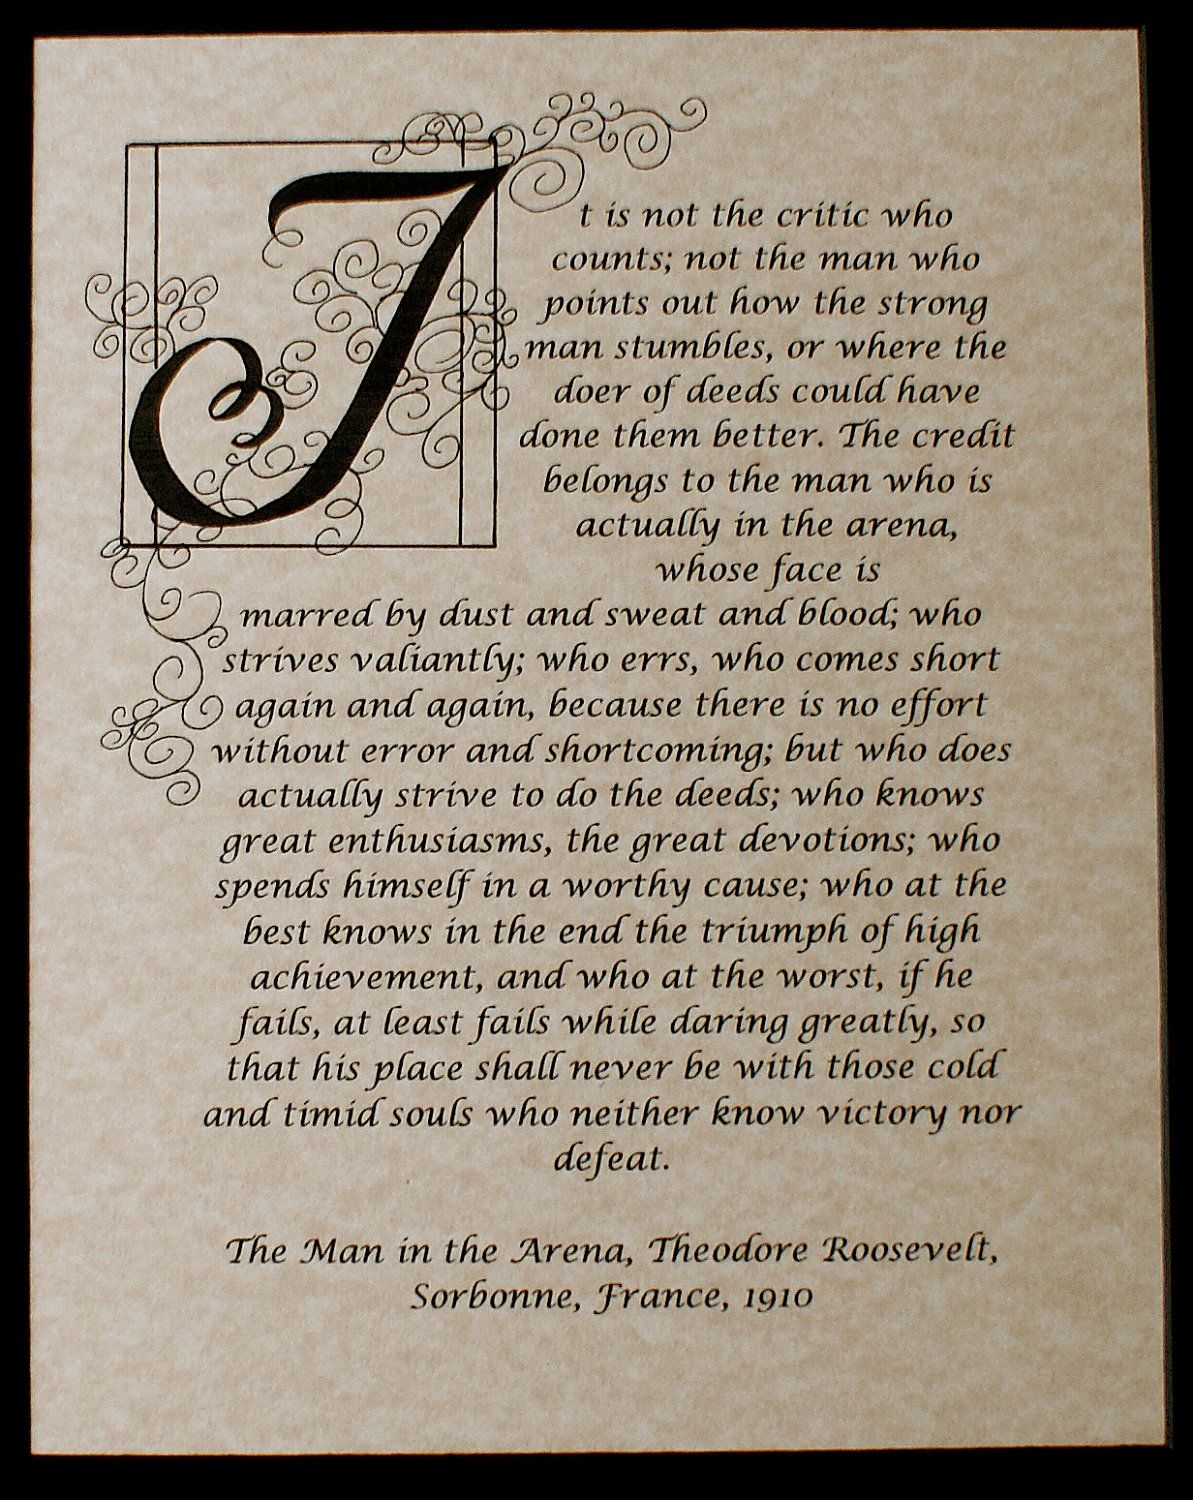 graphic relating to The Man in the Arena Printable identify The gentleman in just the arena via theodore roosevelt - Google Glimpse